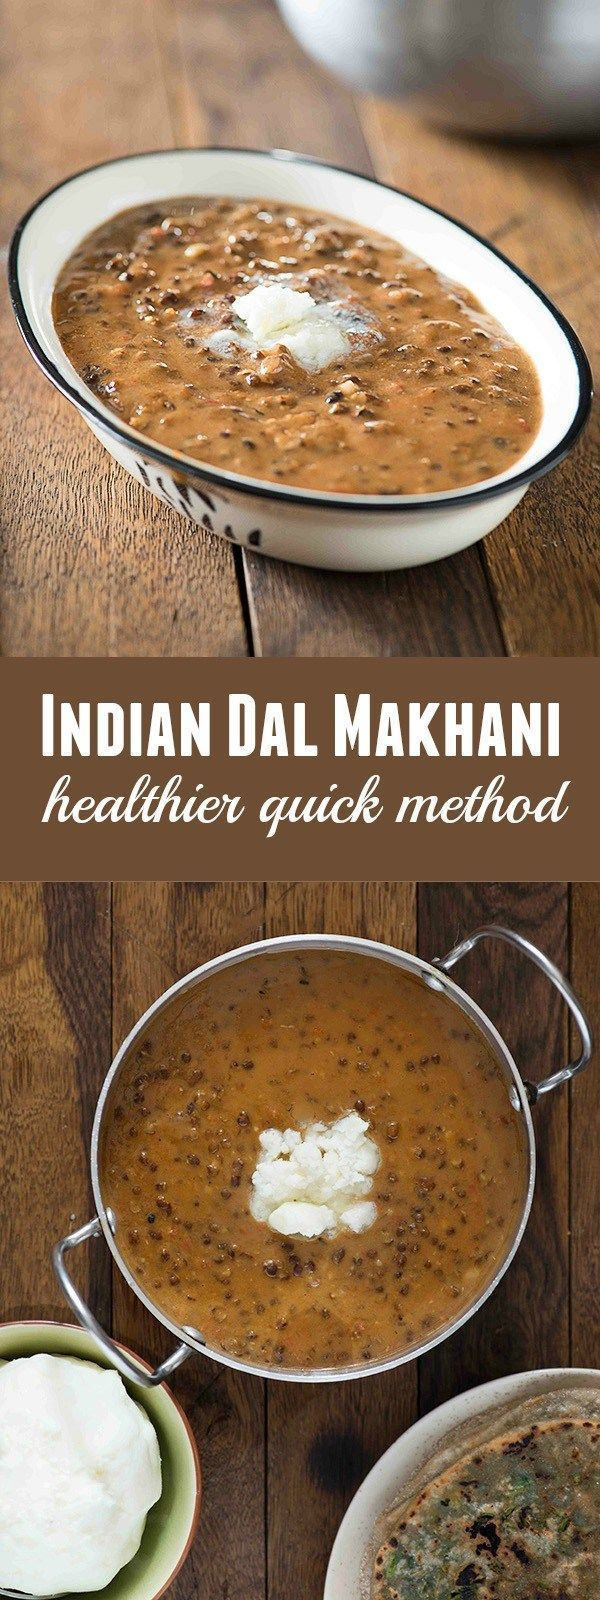 Dal makhani is one of most popular dal recipe in India. A creamy, spicy and buttery dal preparation made with whole Black gram or sabut mah ki dal. The regular restaurant style dal makhani is made using lots of butter and cream, so I usually skip this on